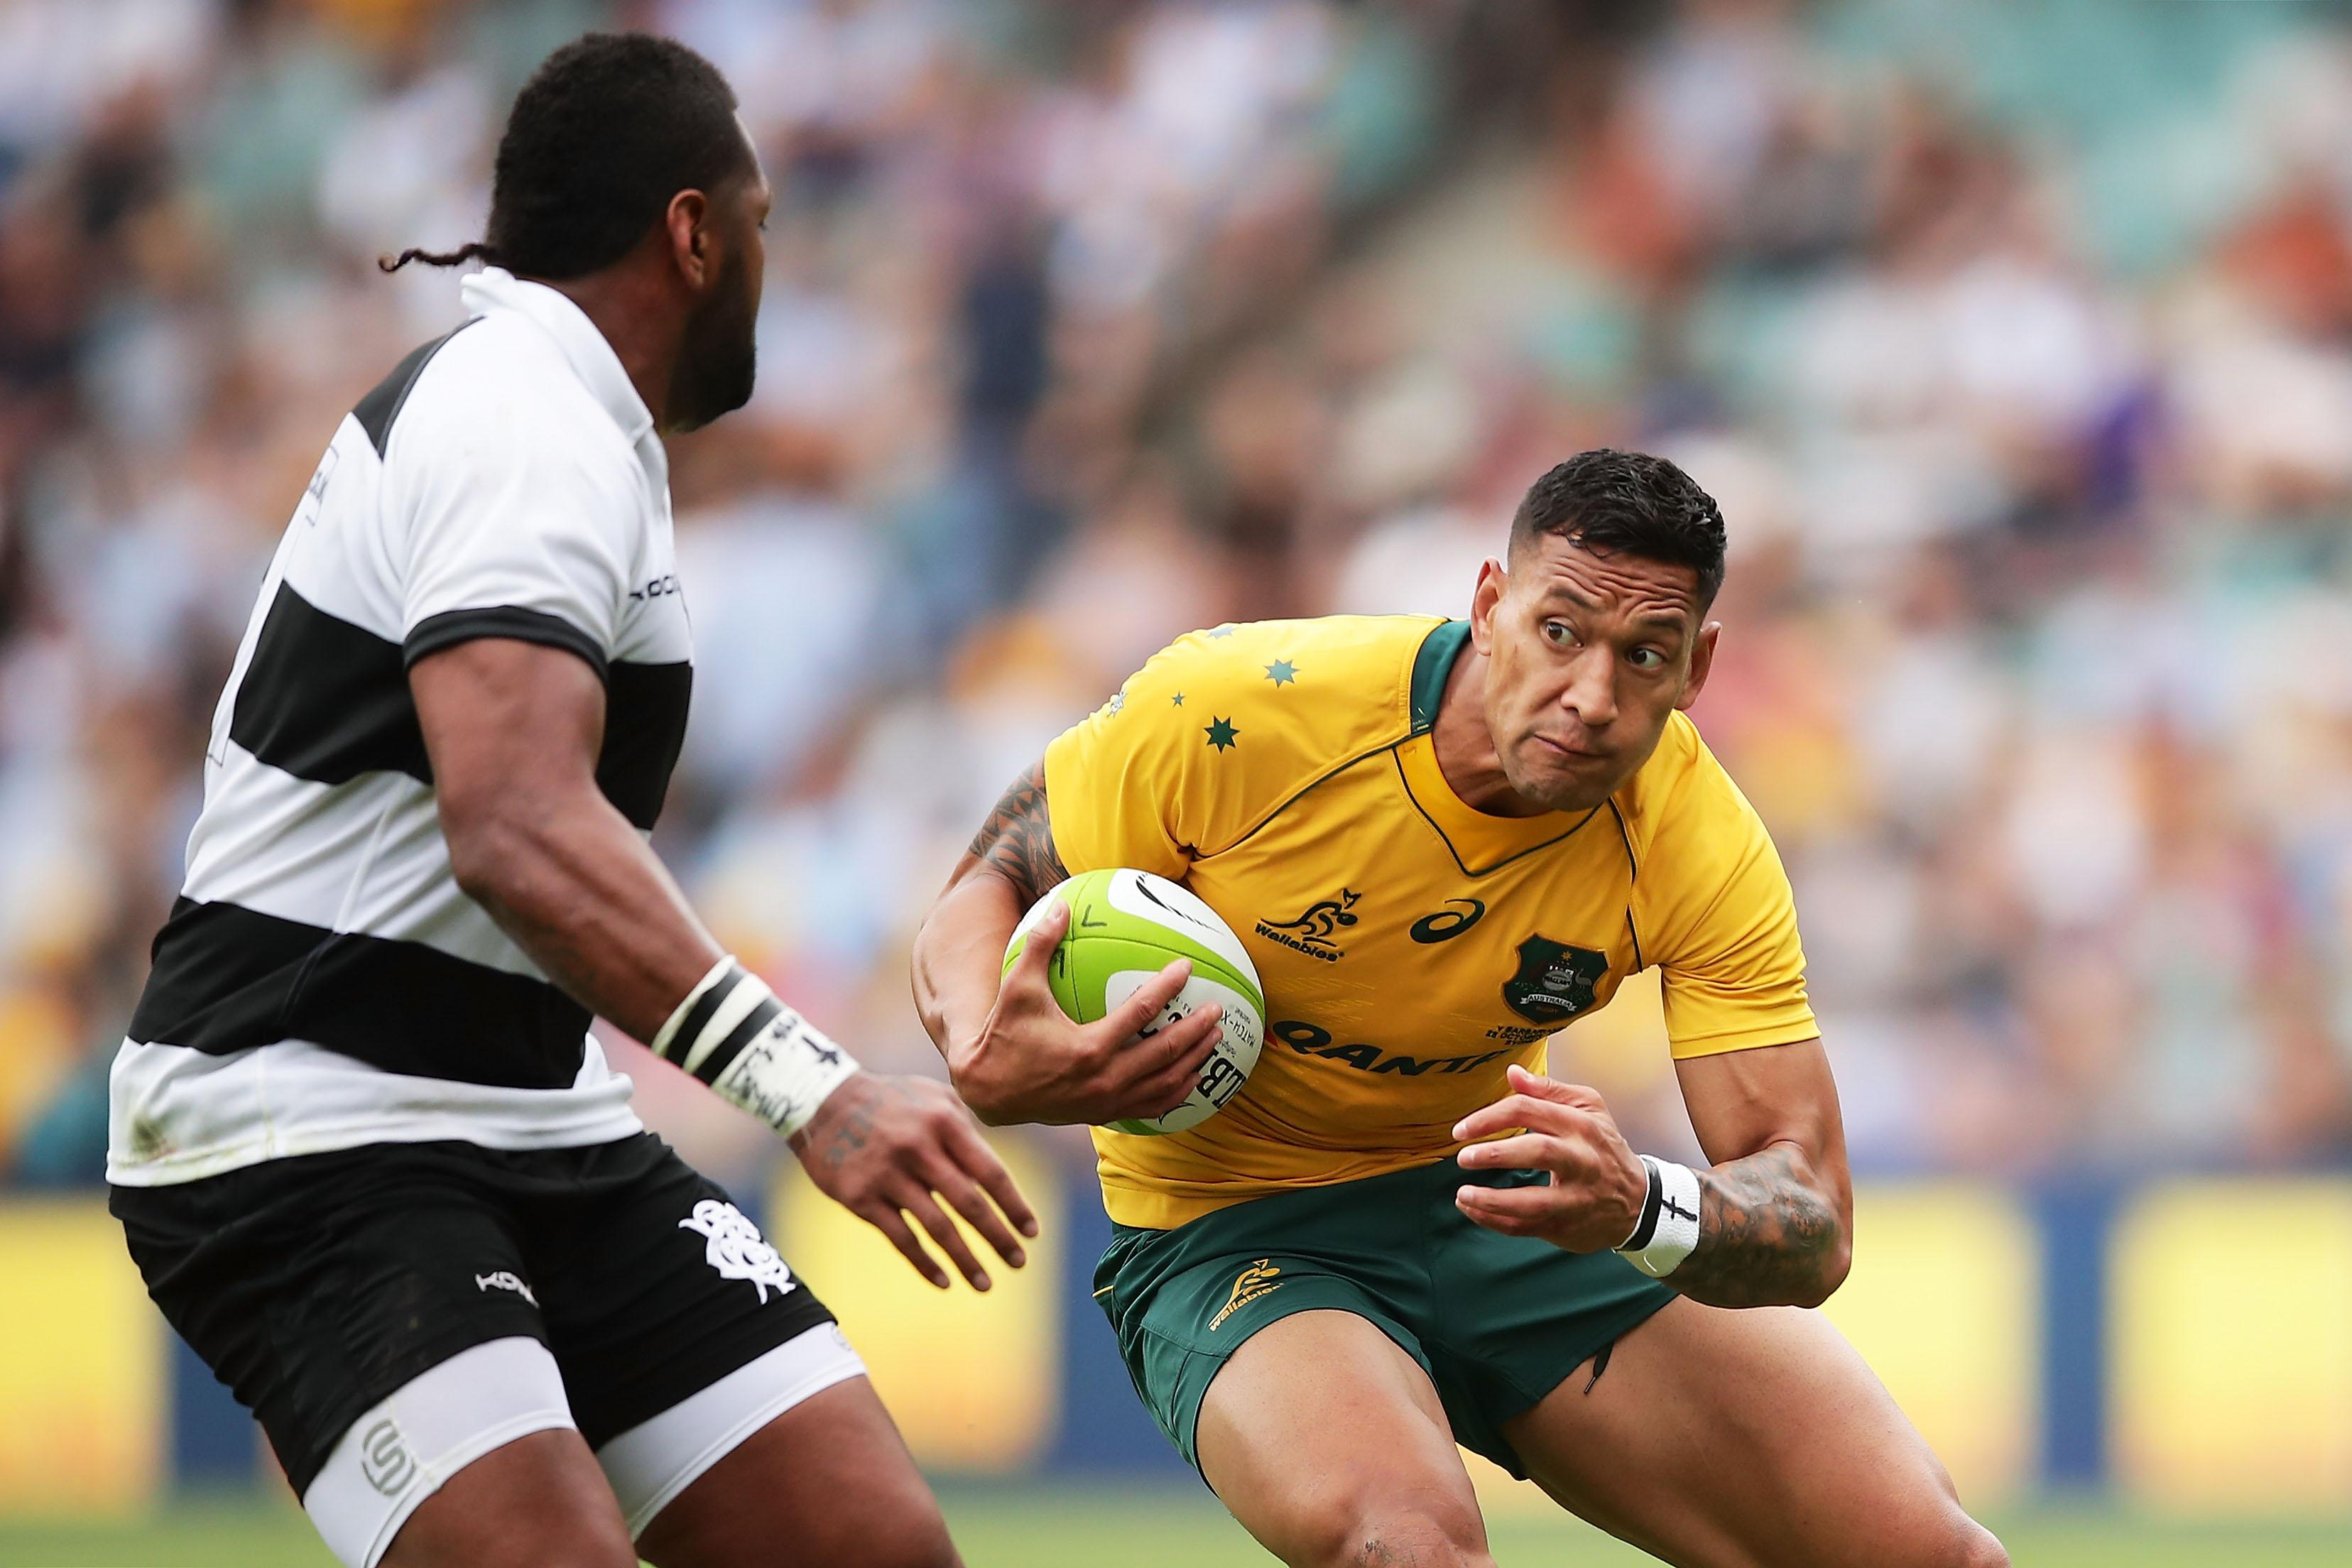 Israel Folau has caused outrage in his home country after his use of anti-gay slurs